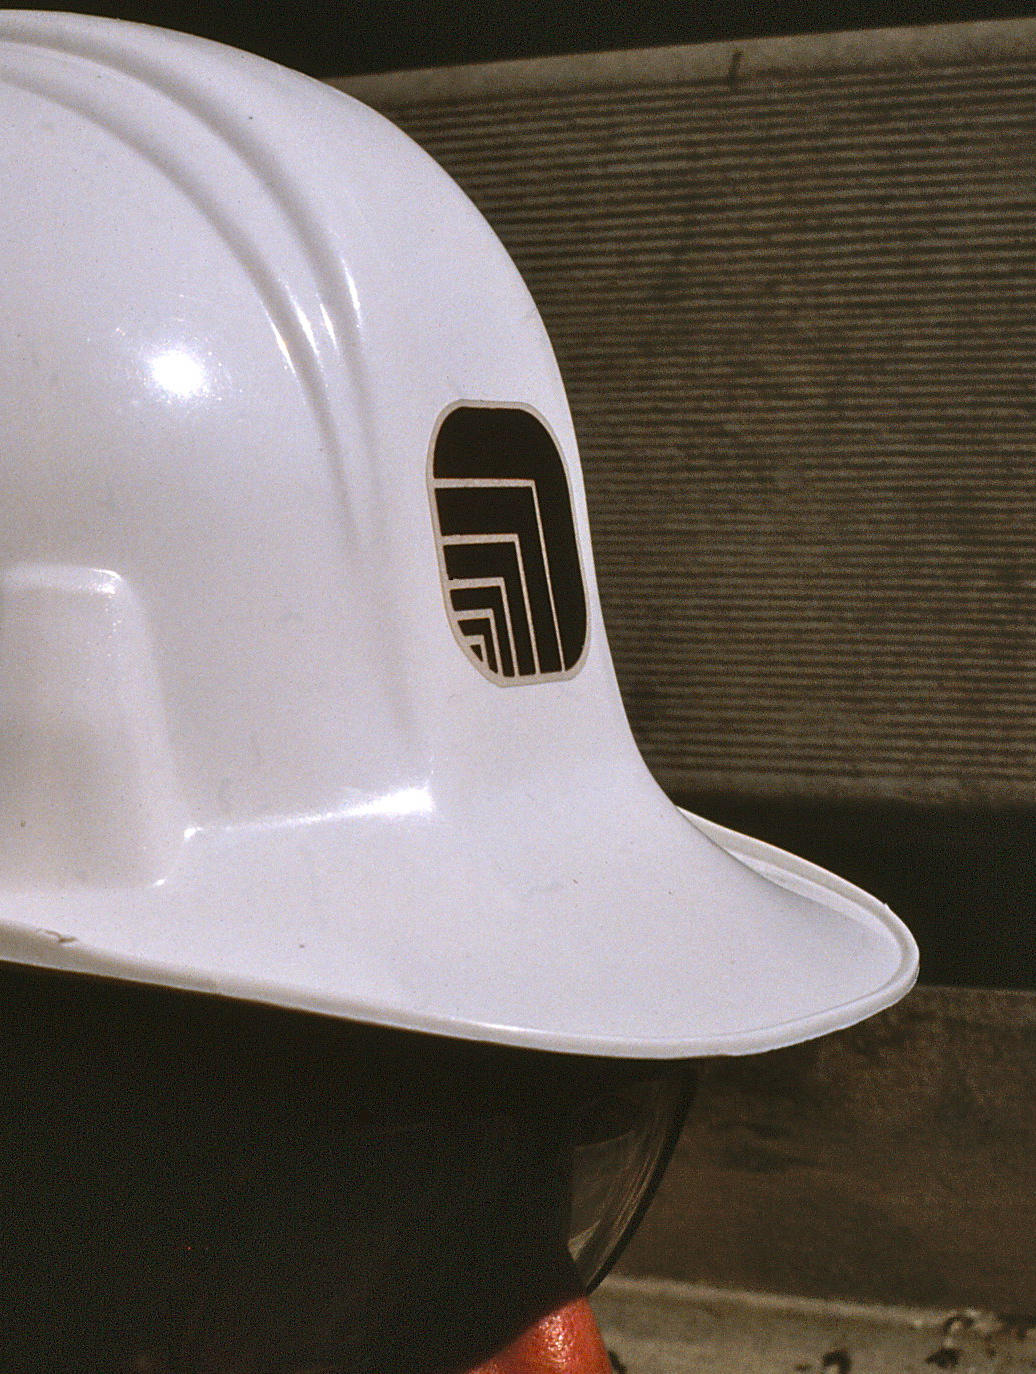 Construction helmet featuring Oxford logo at front.